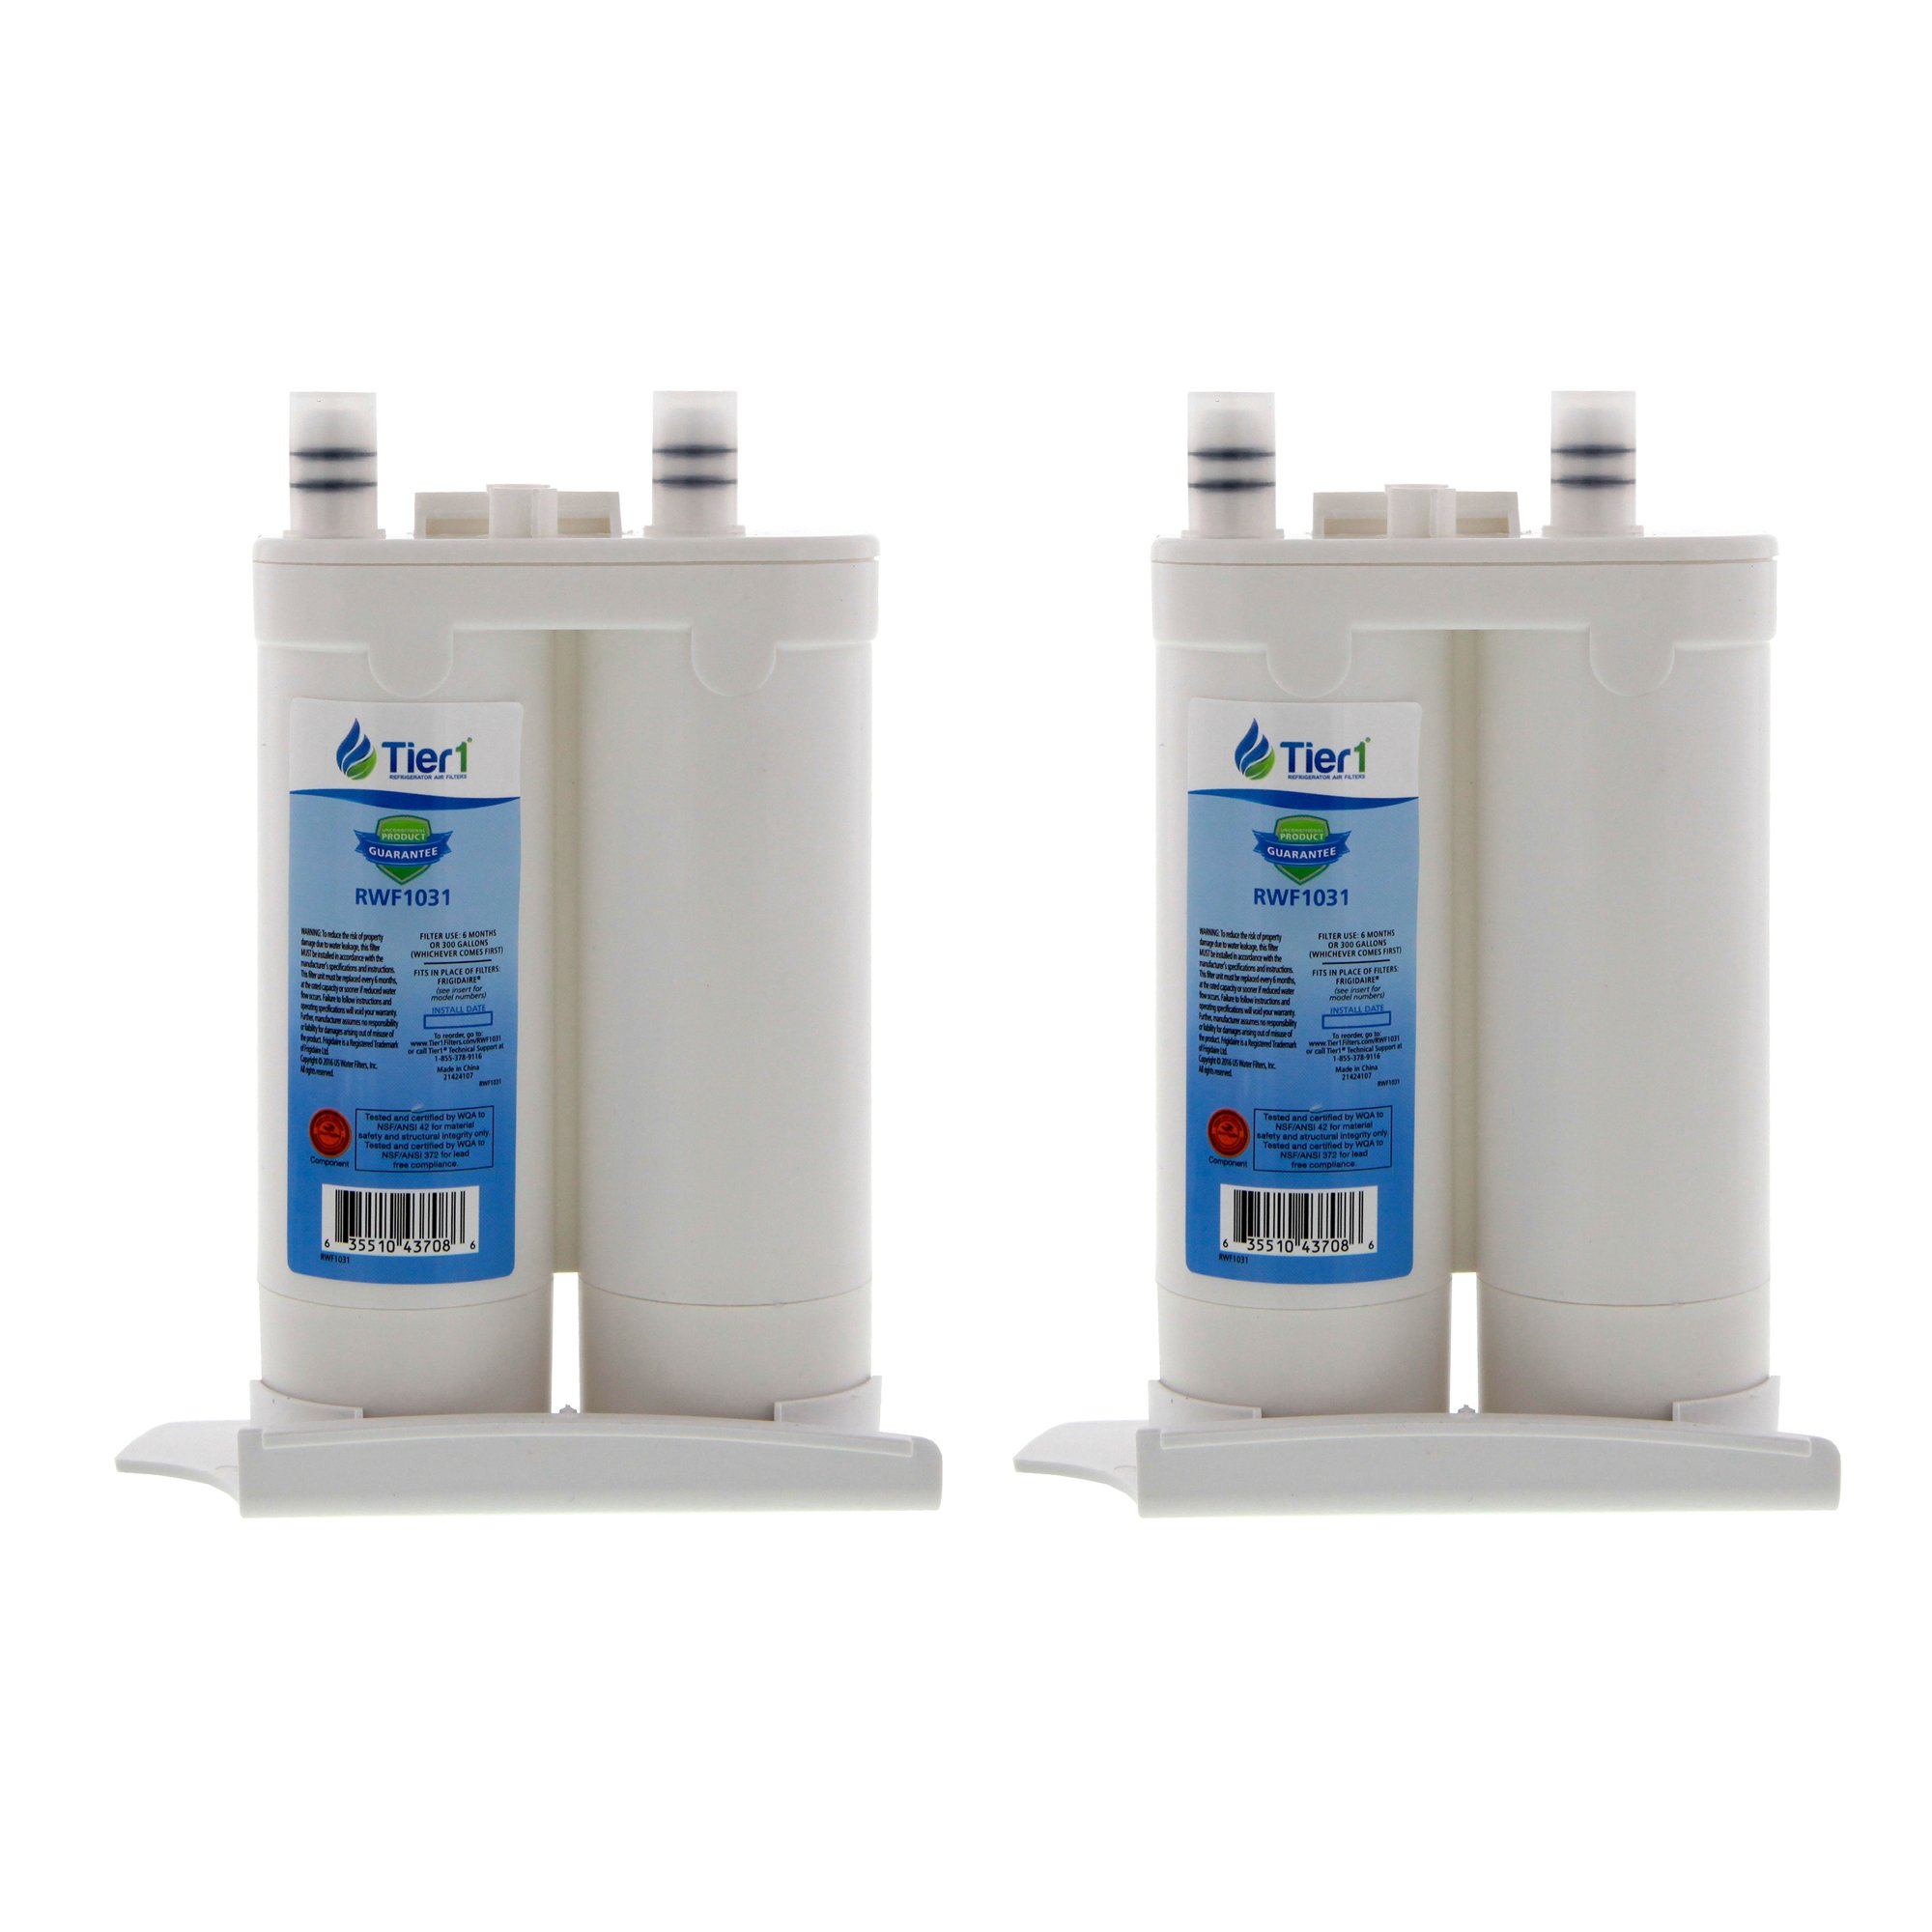 2 Pack Tier1 WF2CB Electrolux NGFC 2000, 1004-42-FA, 469911, 469916, FC 100 Replacement Refrigerator Water Filter